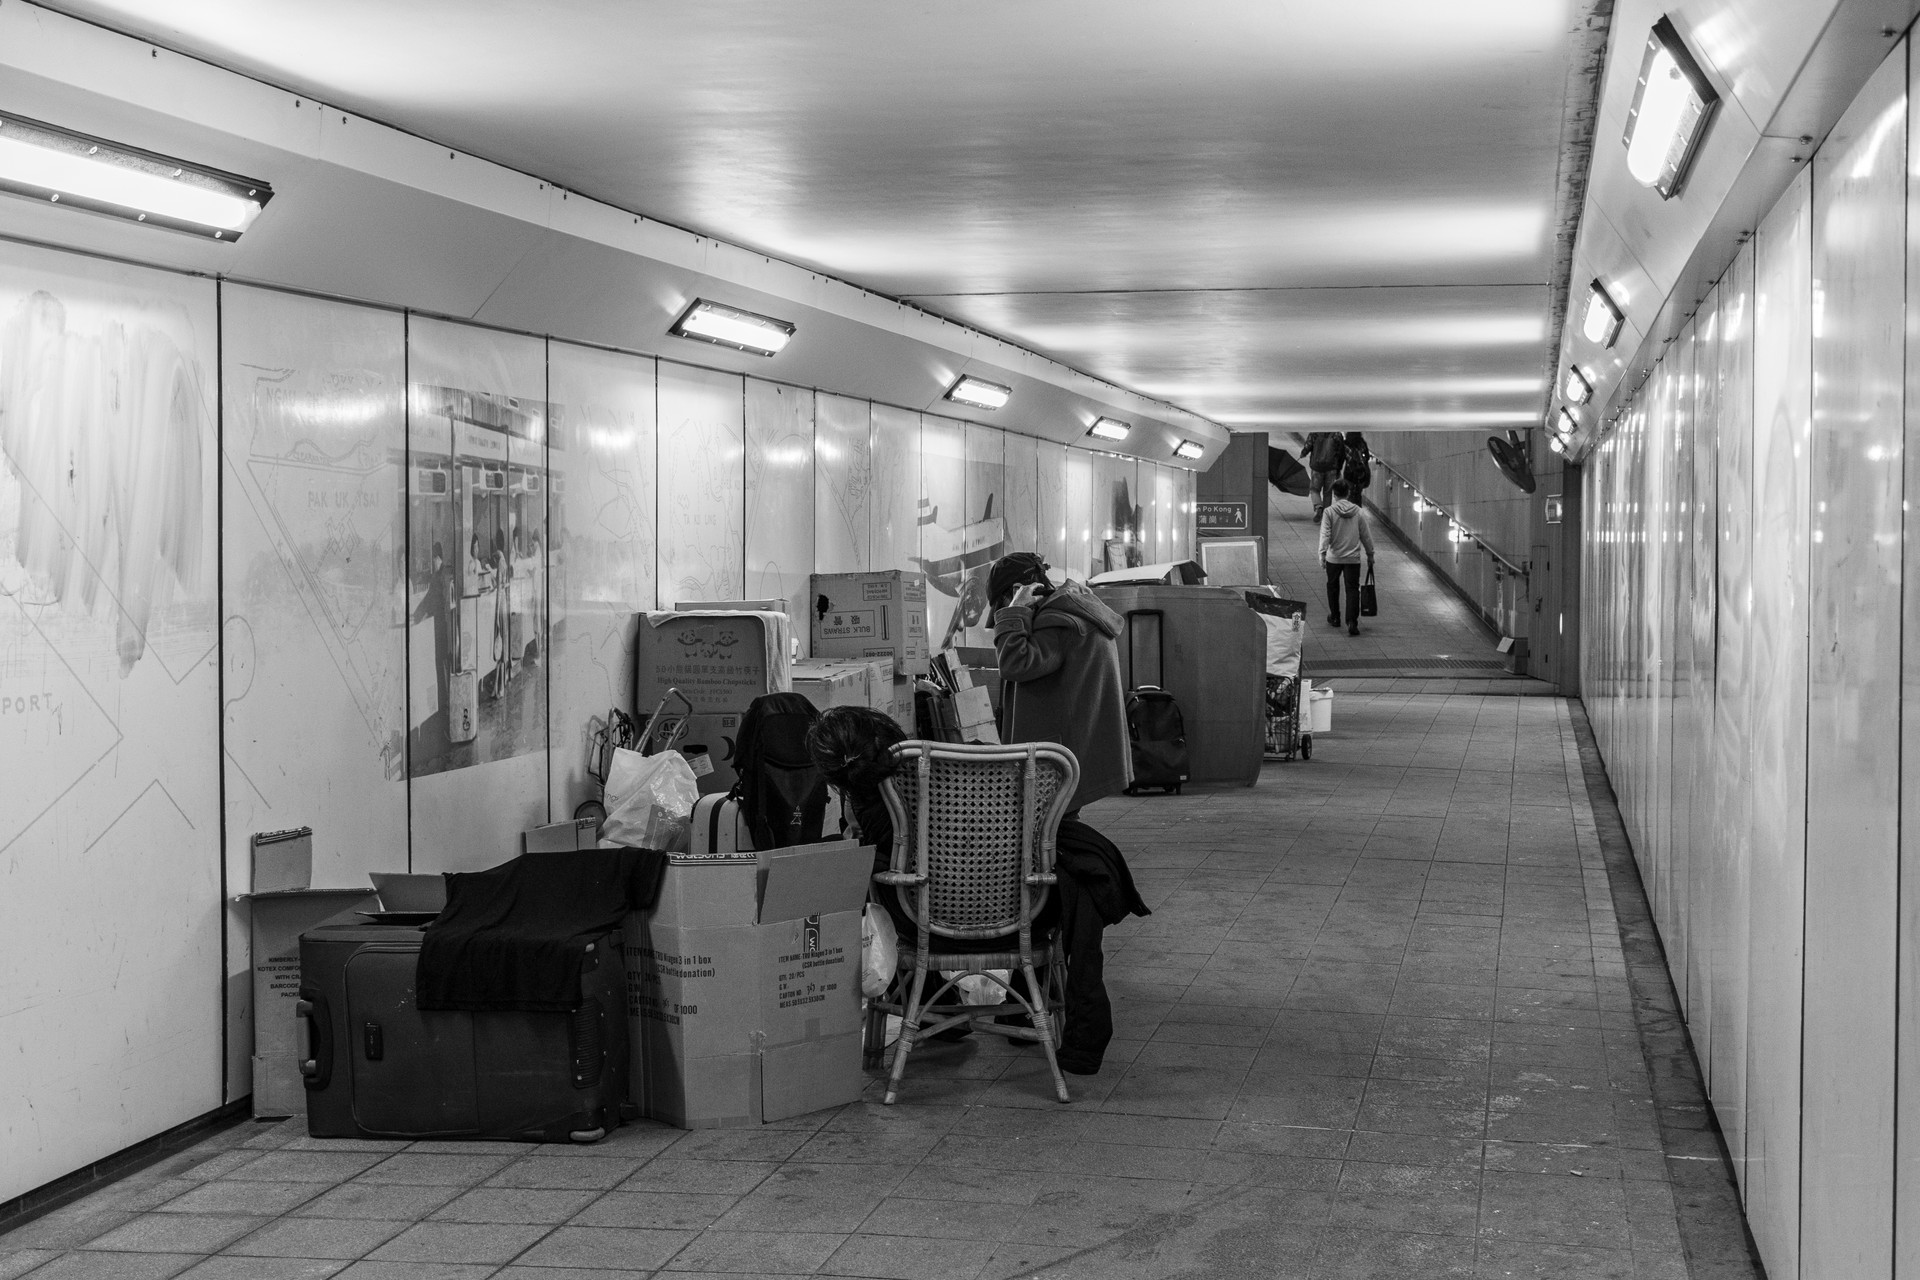 However, some users of the tunnels are living here. In the foreground, homeless people establish their shelter, in contrast, some people are going home by leaving the tunnel in the background.